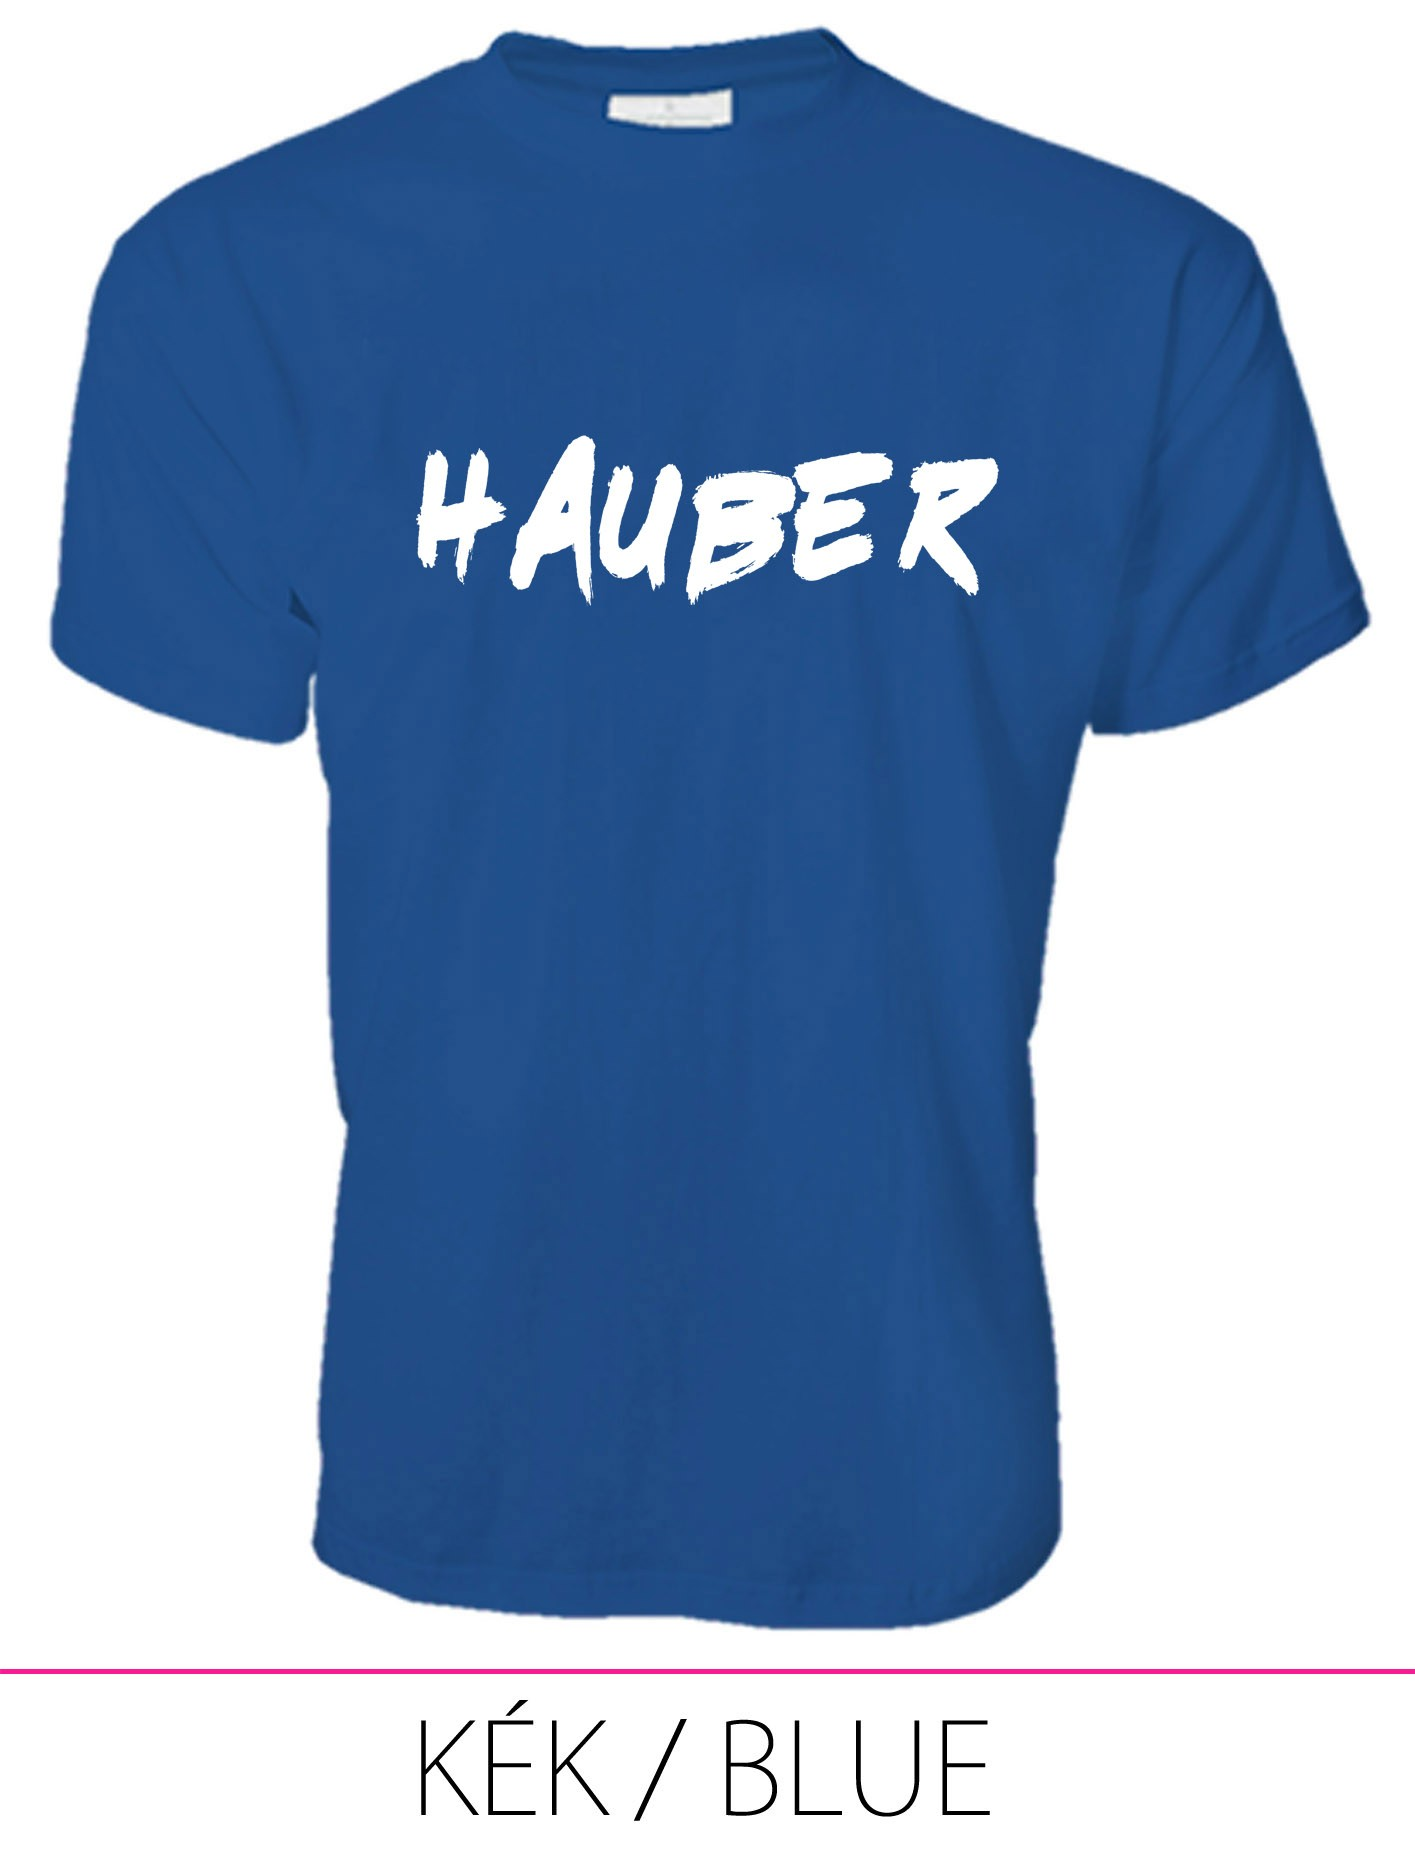 MEN PREMIUM CREW NECK T-SHIRT HAUBER BLUE